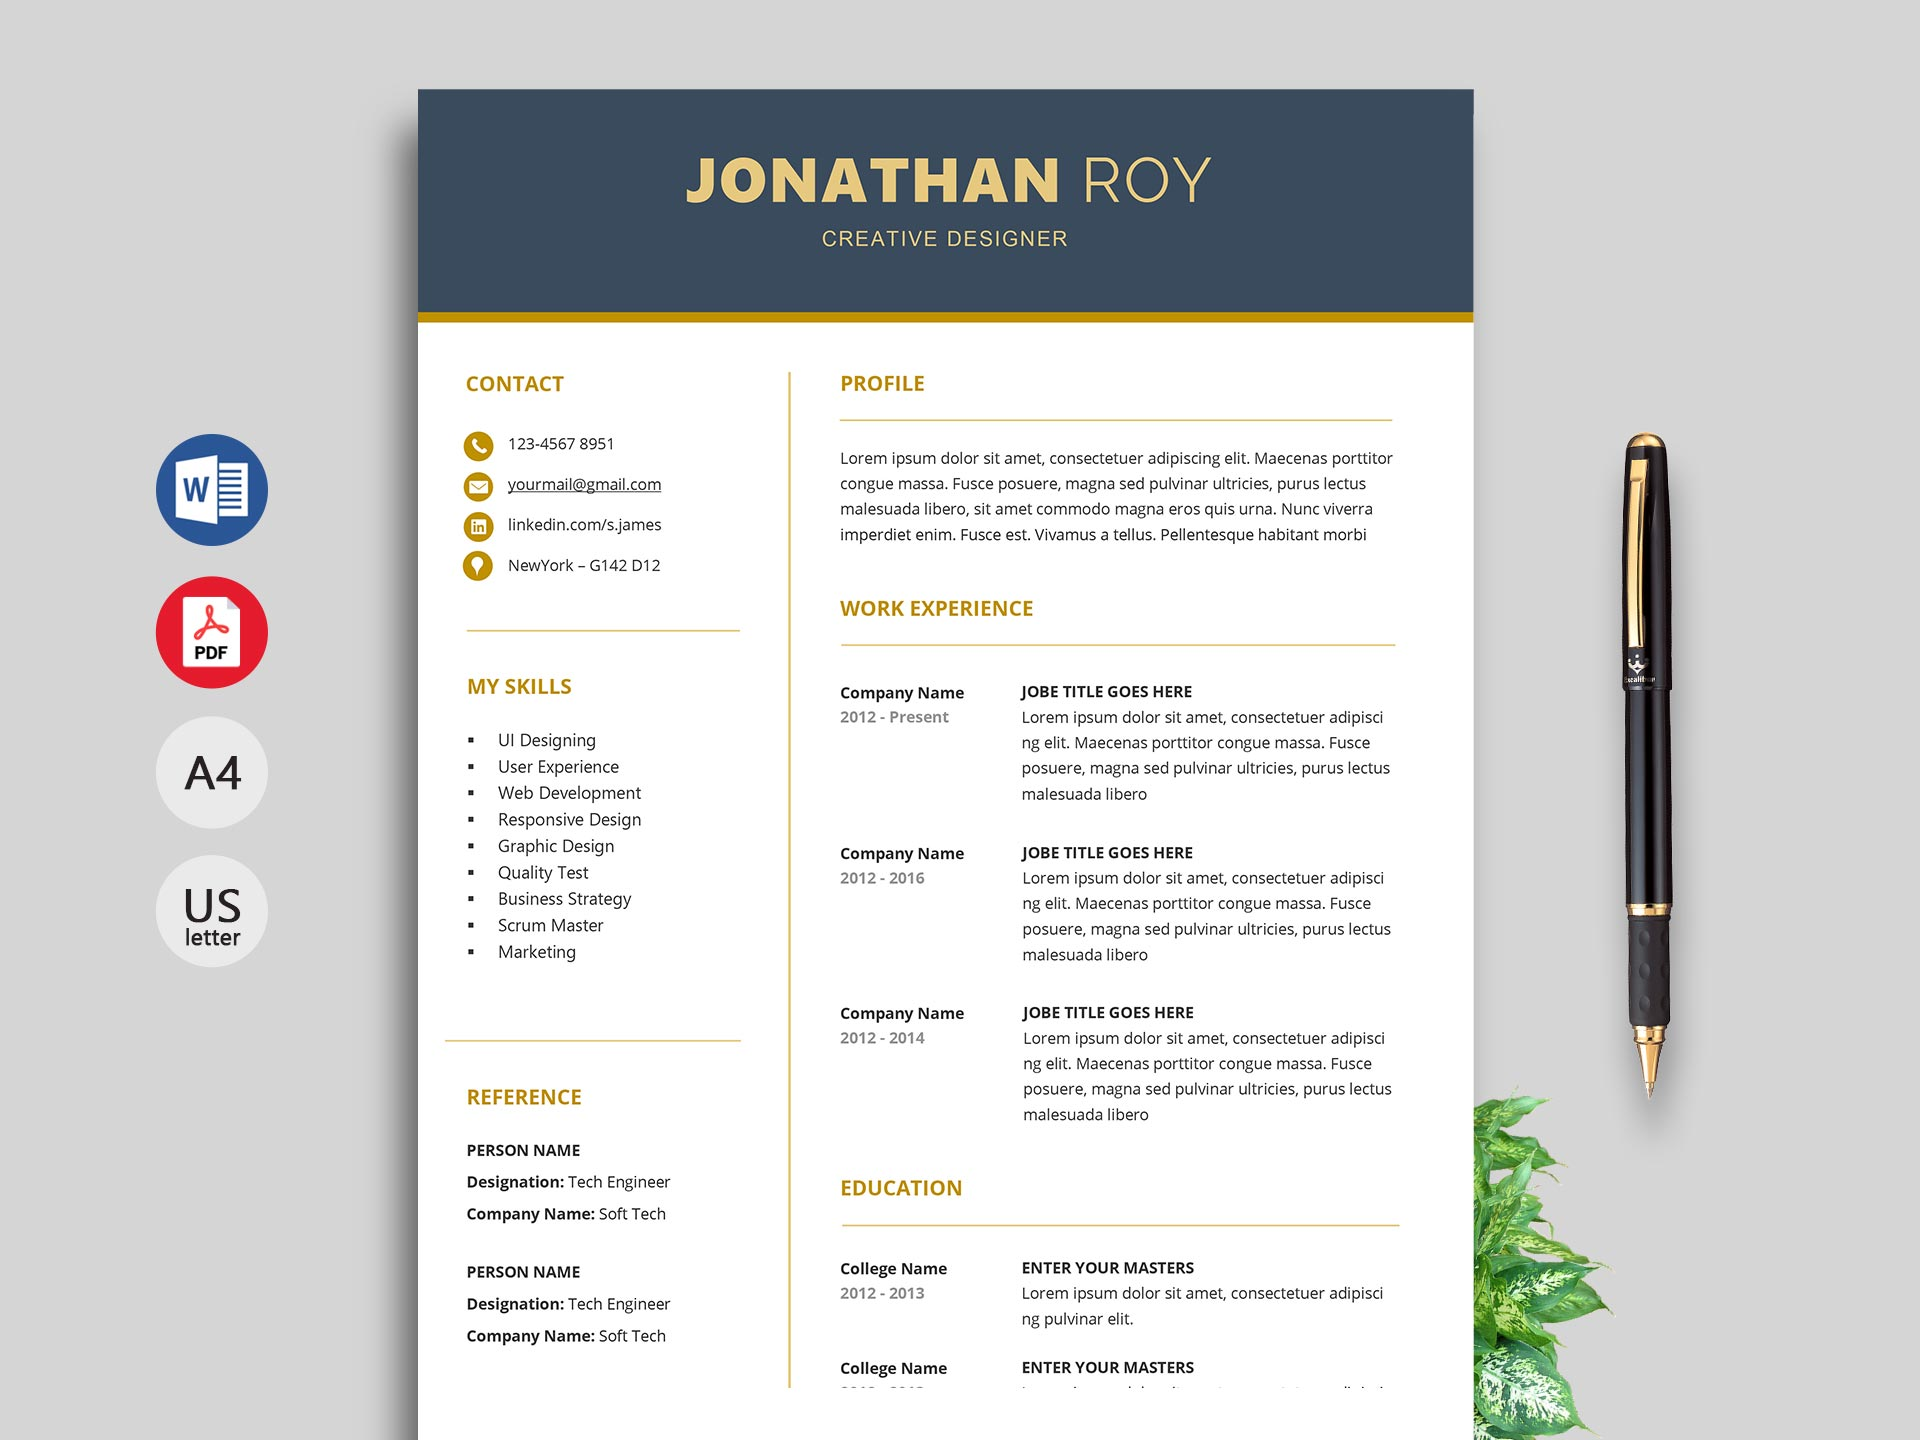 free pdf resume template collection resumekraft gain follow up phone call director level Resume Resume Download Free Pdf